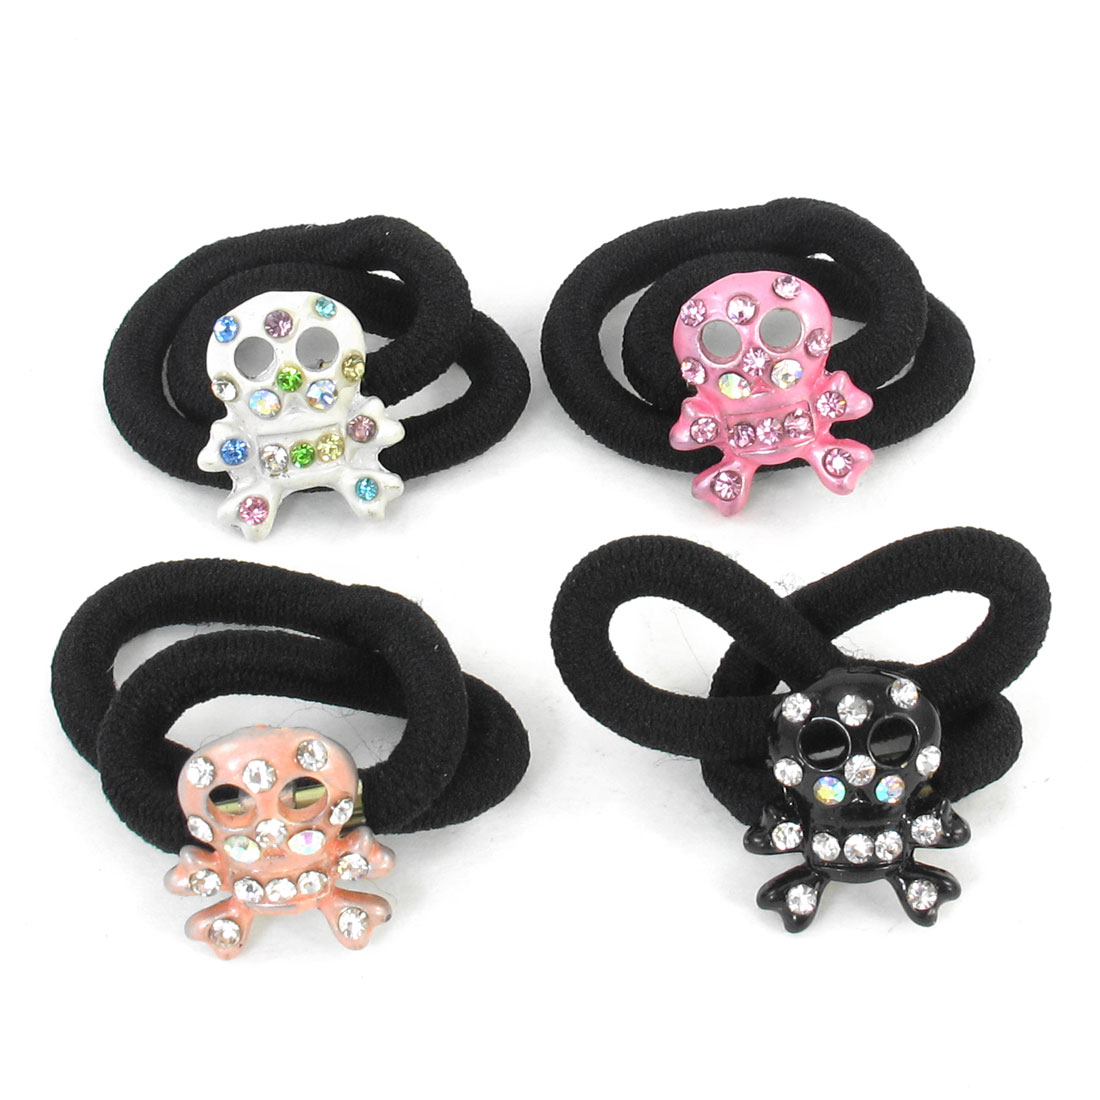 4 Pcs Girls Colored Rhinestone Inlaid Skull Head Decor Elastic Rubber Hair Band Tie